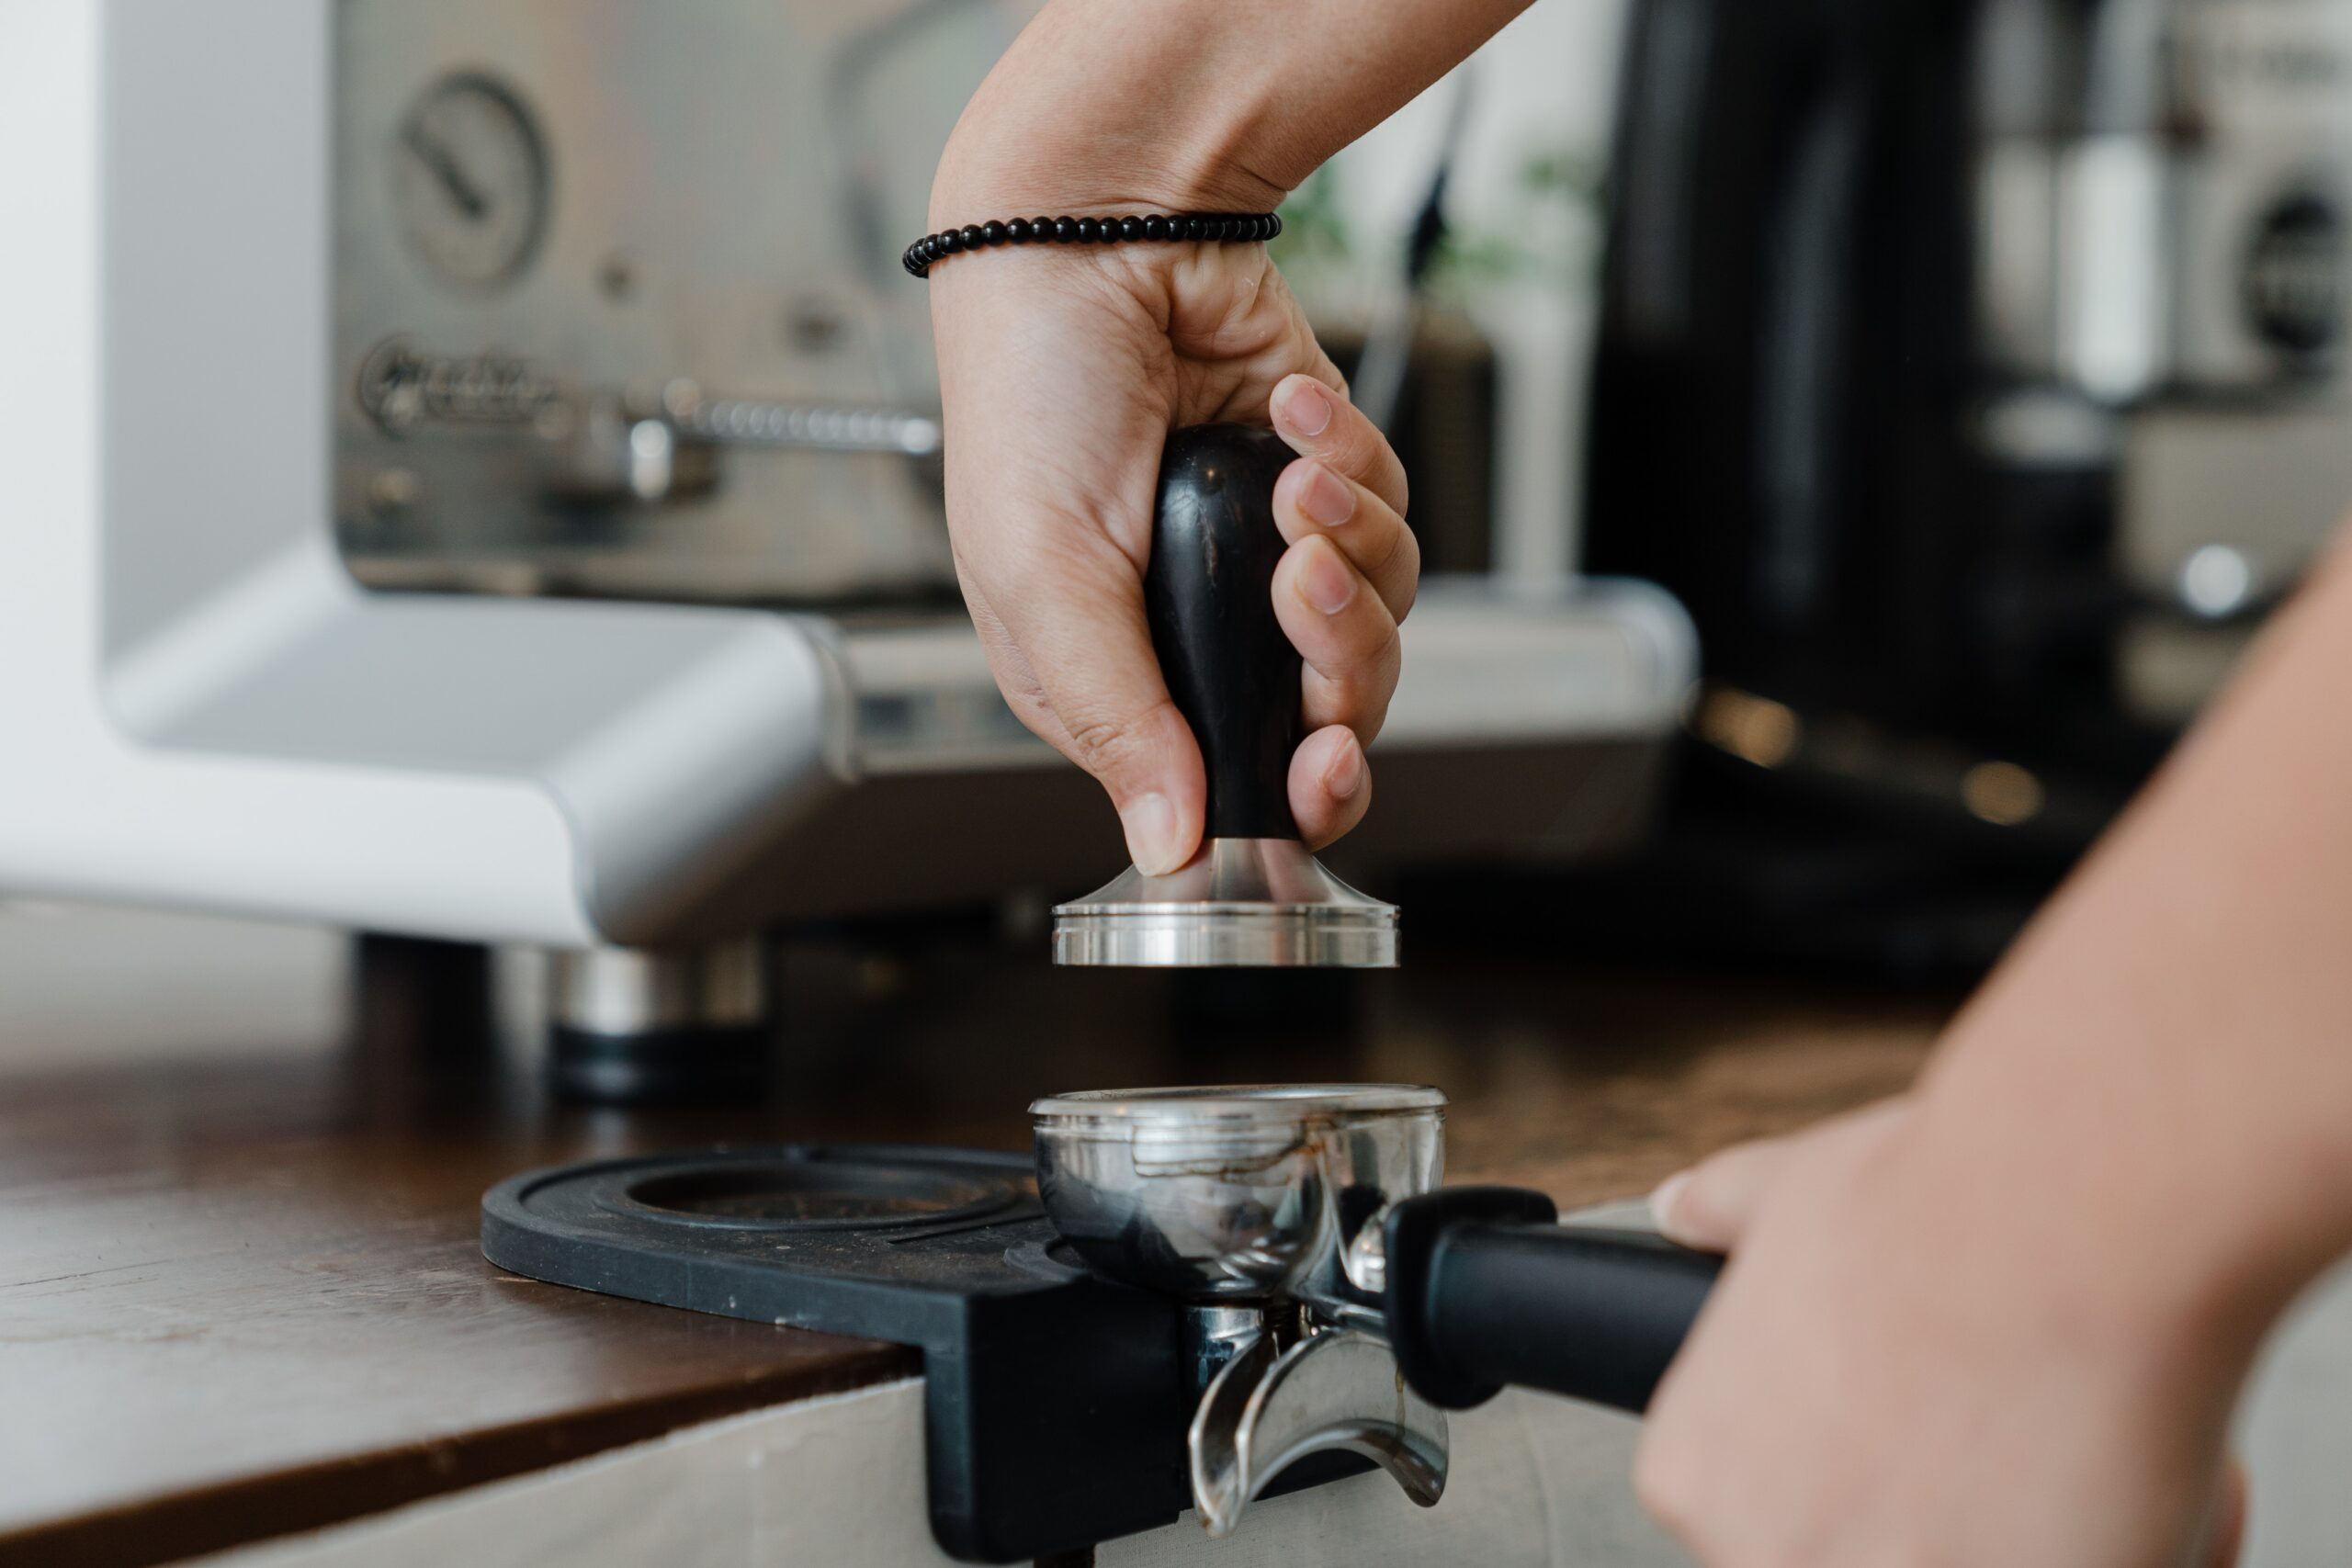 Person tamping ground coffee for an espresso machine